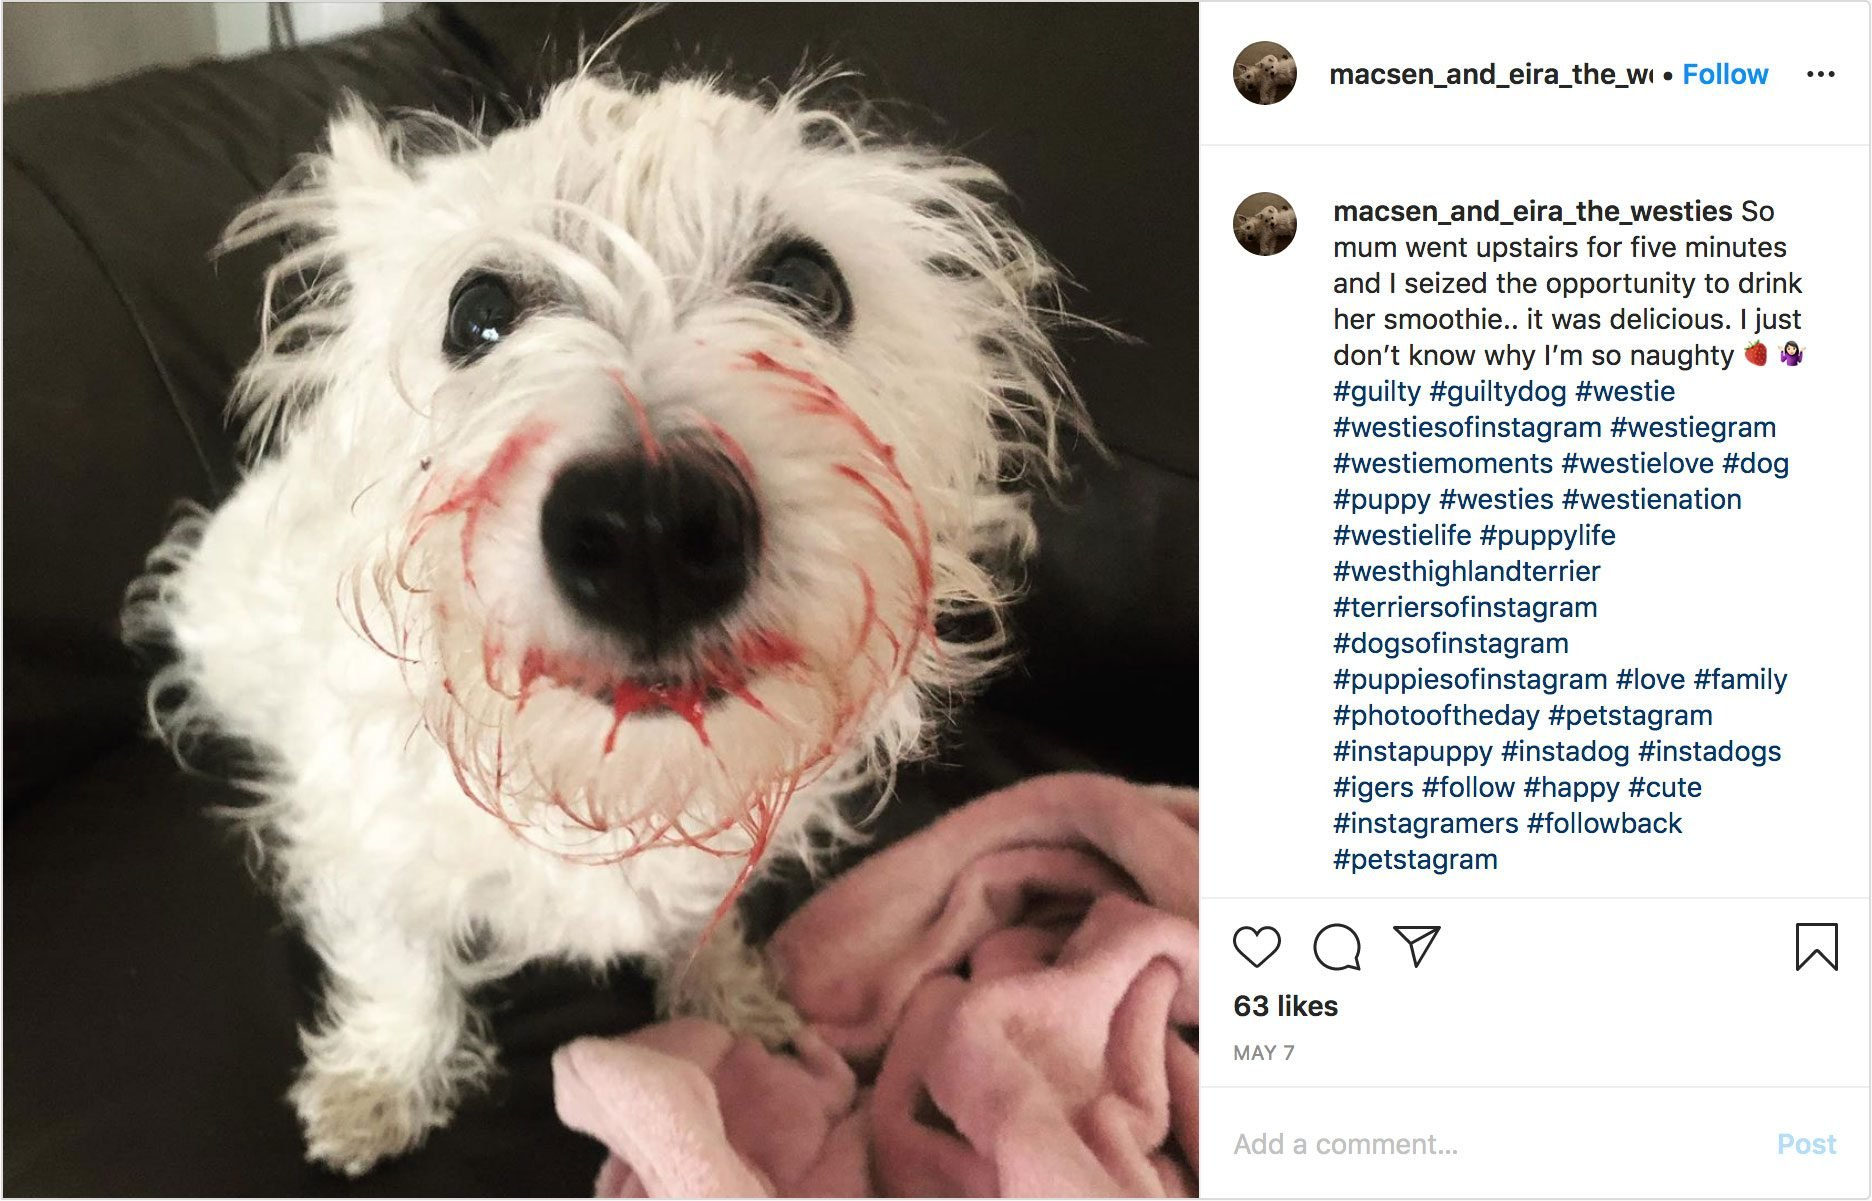 macsen_and_eira_the_westies instagram. guilty dog.